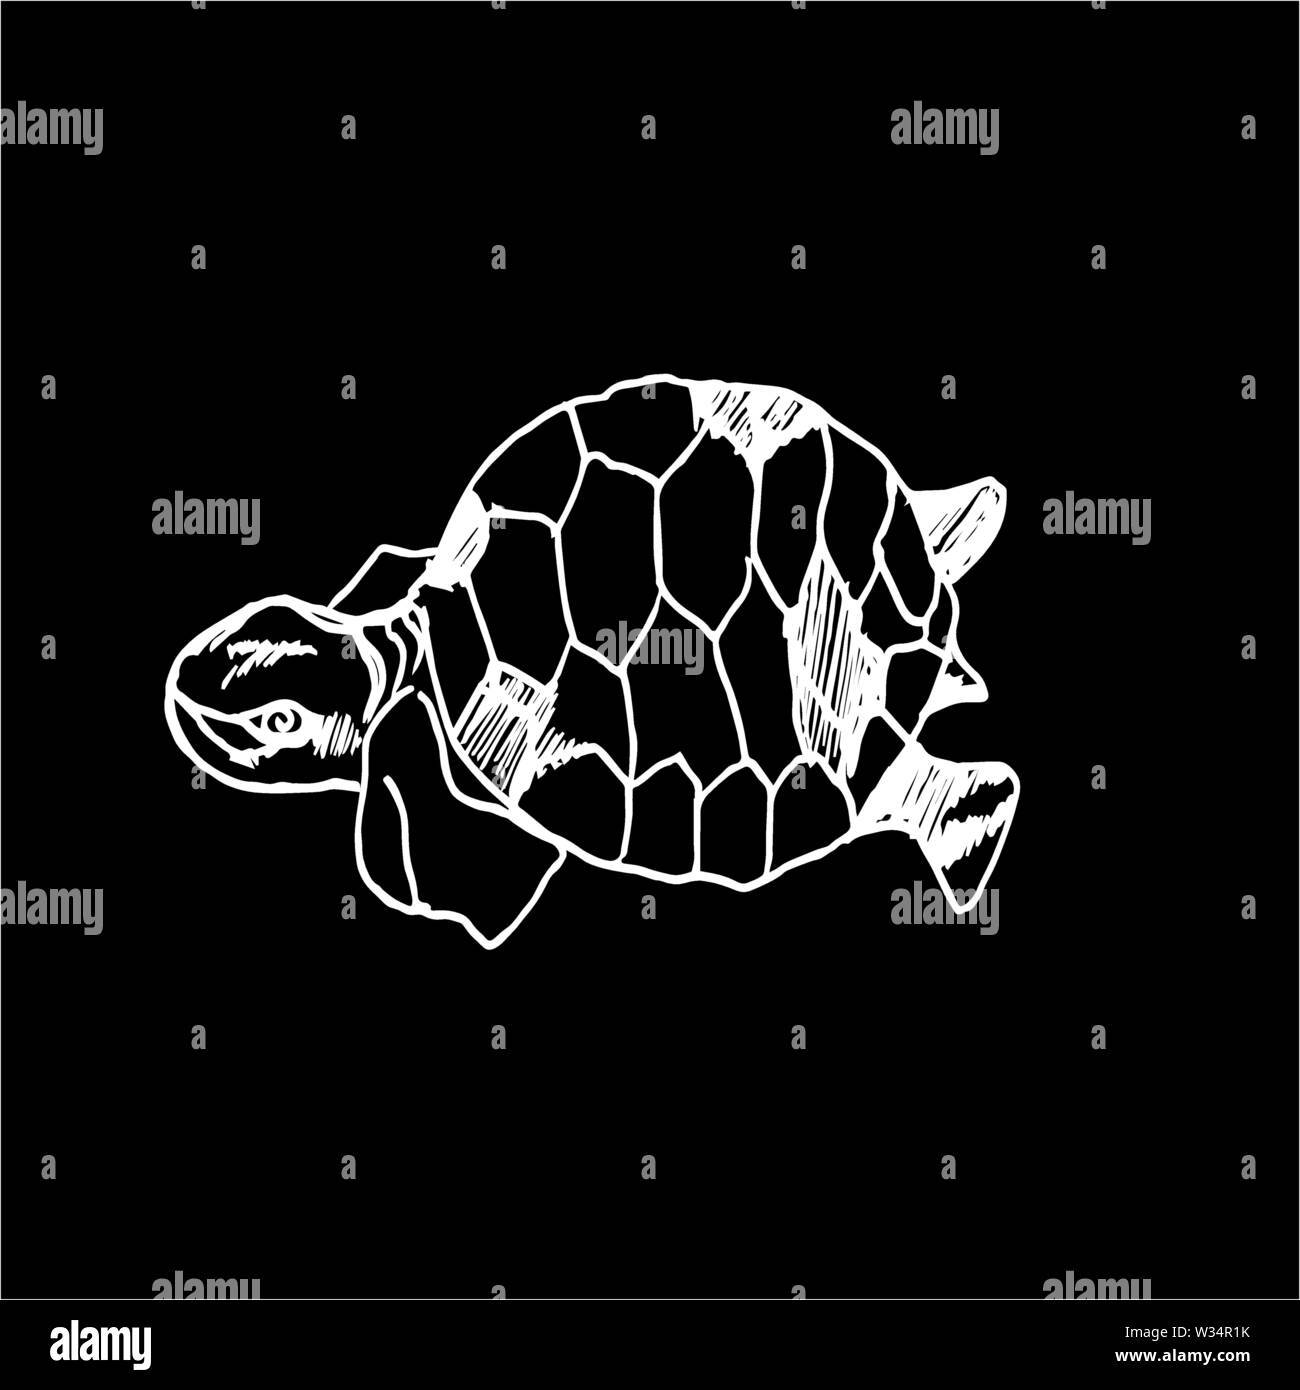 Black and white illustration of a psychedelic turtle. - Stock Image